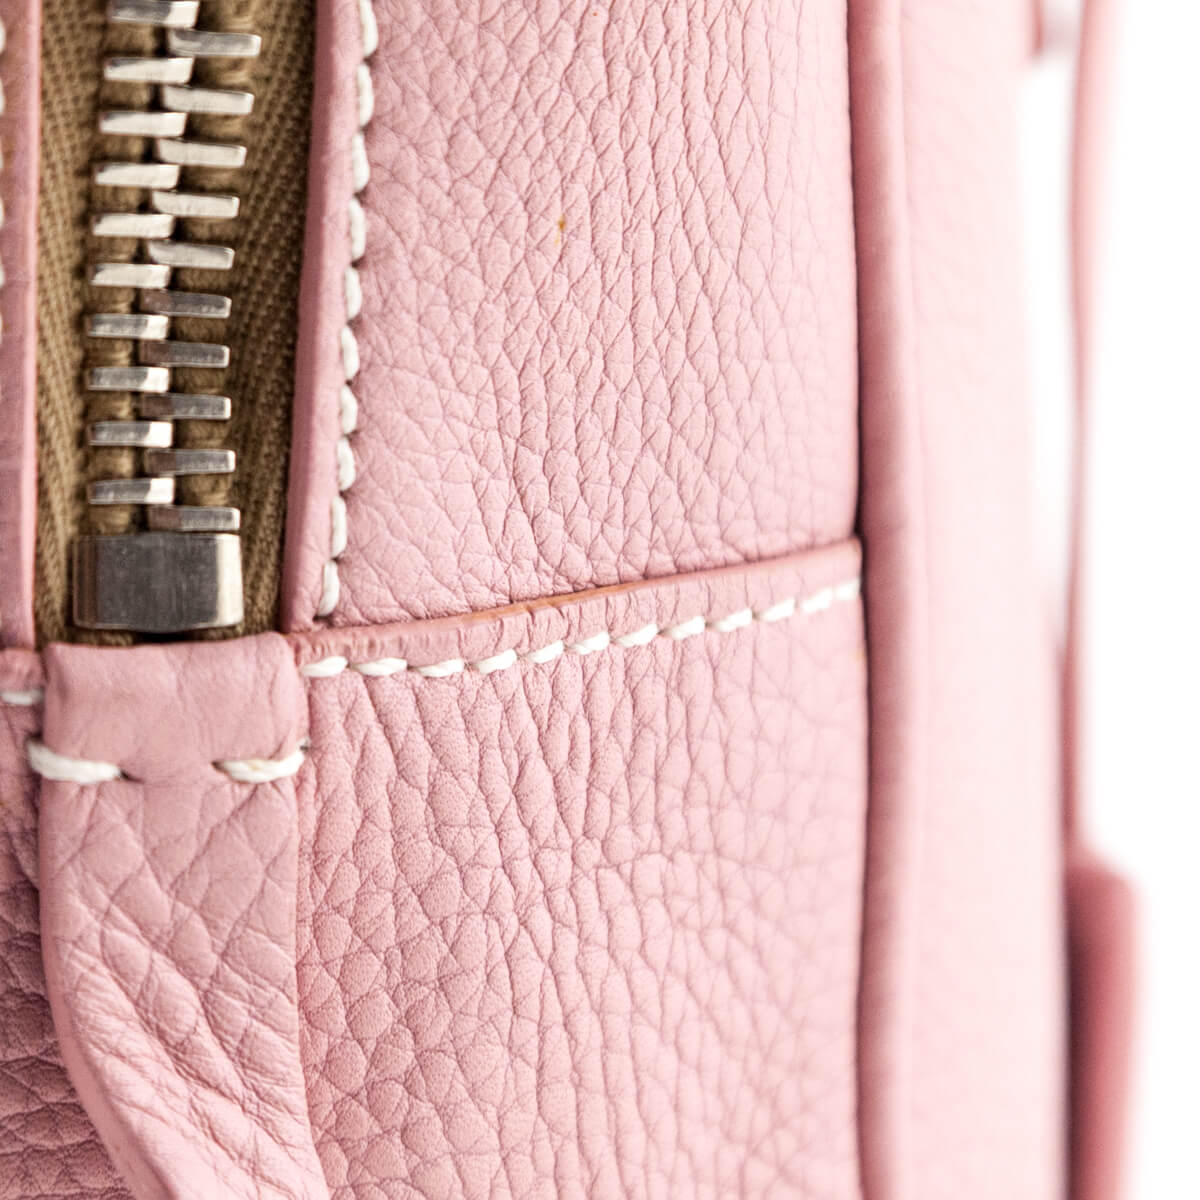 8a632c5290f7 ... Prada Baby Pink Cervo Small Bowler Bag - LOVE that BAG - Preowned  Authentic Designer Handbags ...